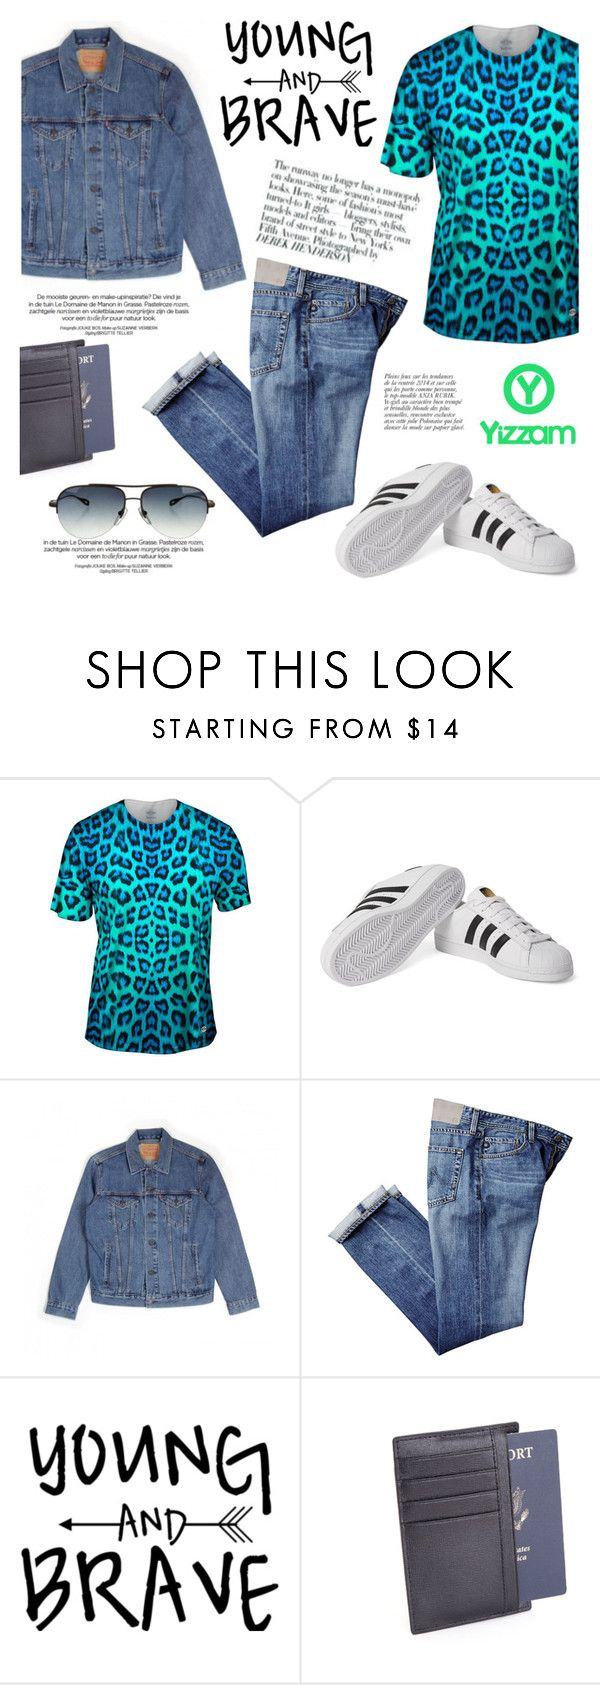 """""""Neon Blue Leopard Animal Skin/Yizzam T-shirts and more"""" by helenevlacho ❤ liked on Polyvore featuring adidas Originals, Levi's, Avenue, Royce Leather, Anja, Chrome Hearts, menswear and yizzam"""